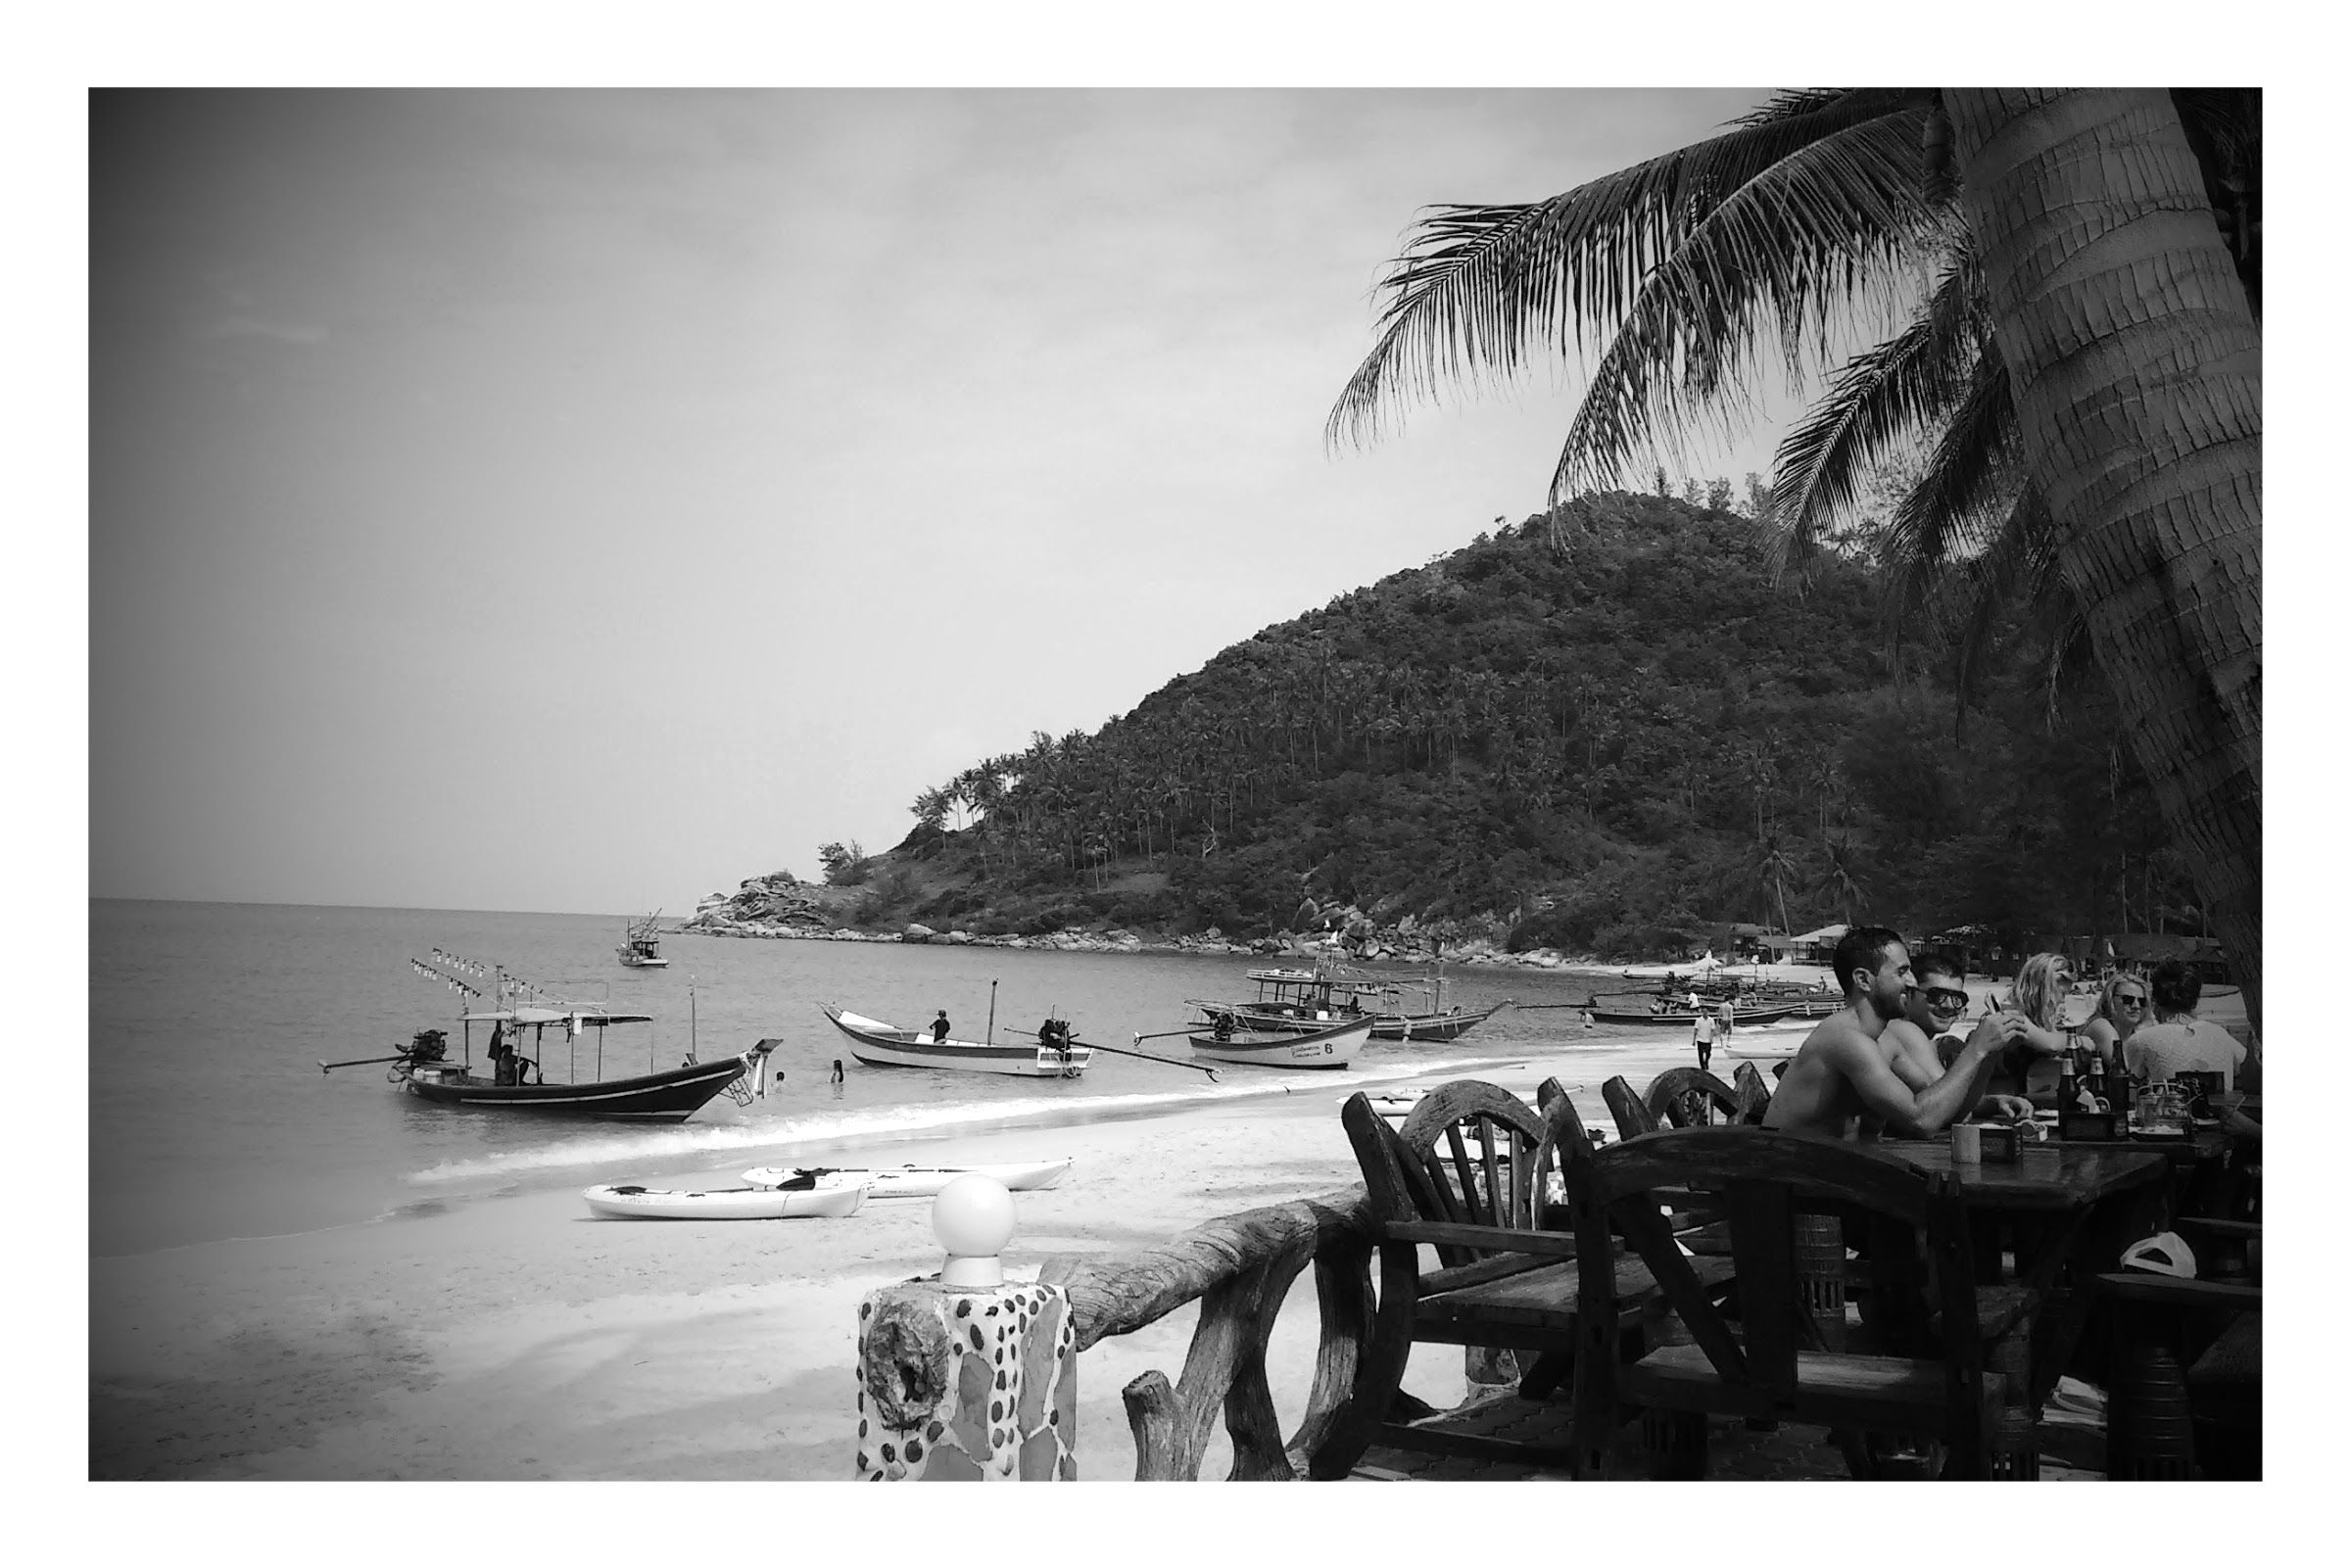 Bottle Beach on Koh Phangan, your typical touristy beach in Thailand